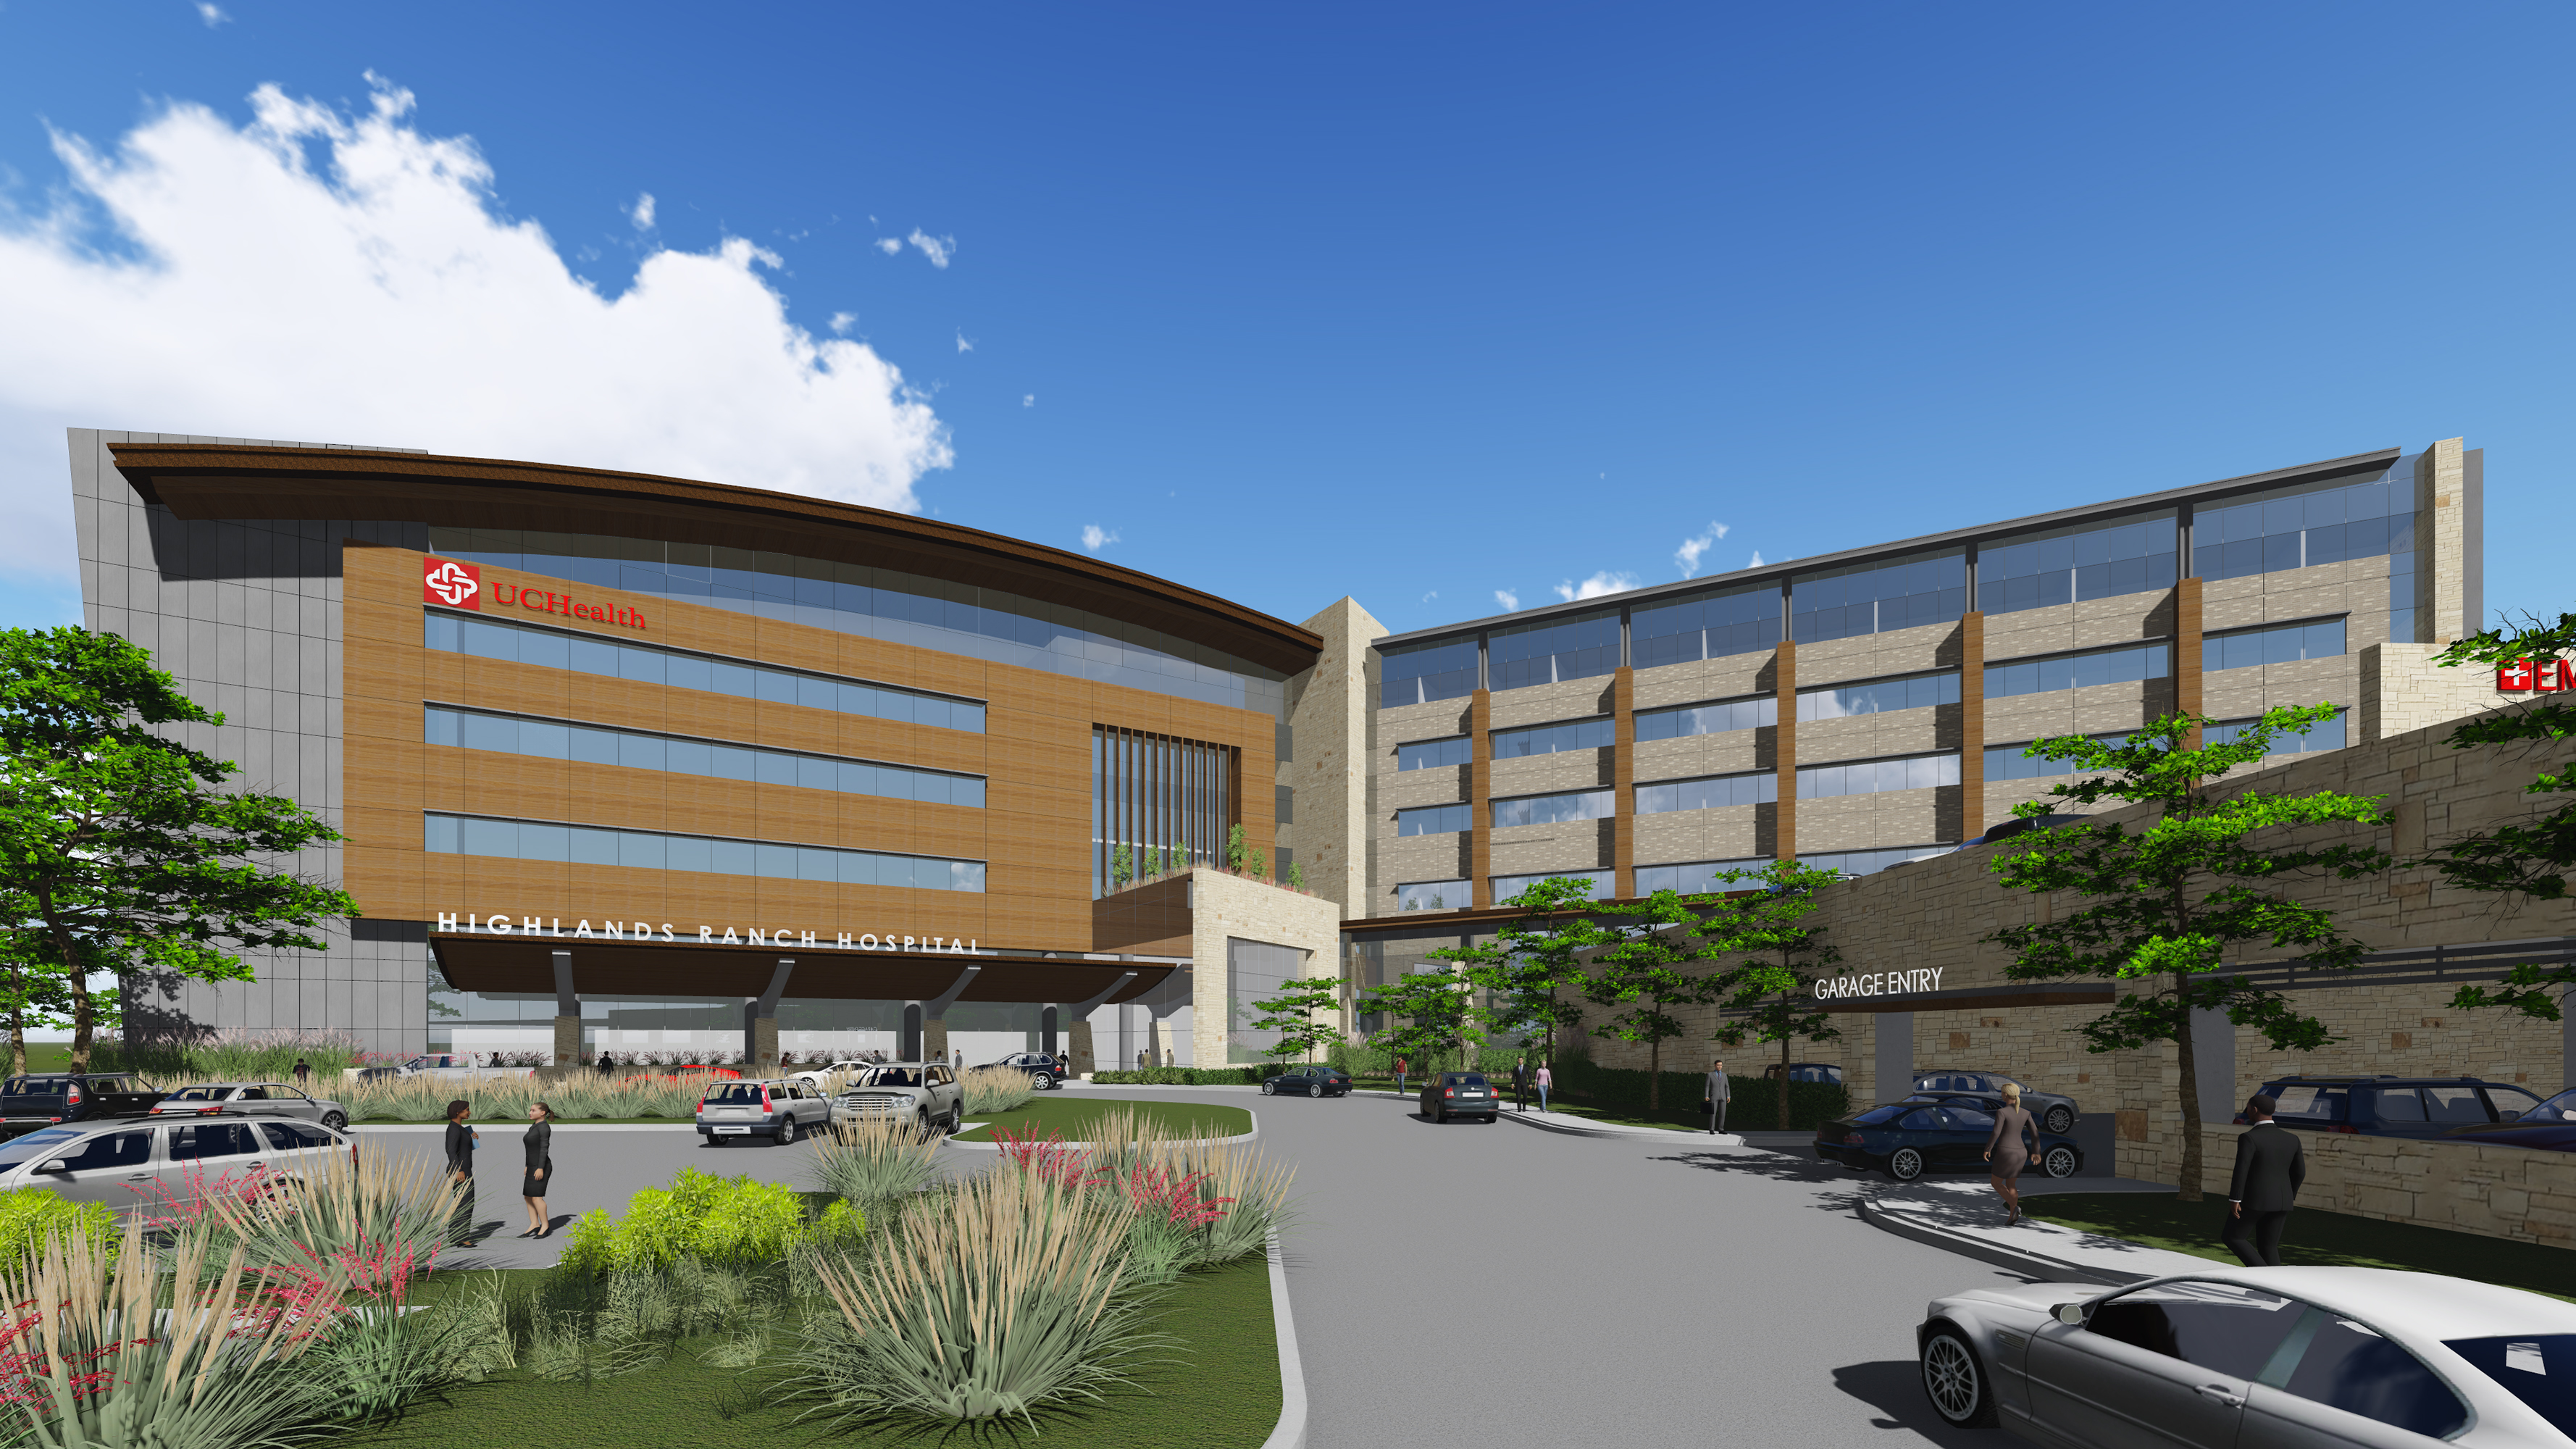 UCHealth New Hospital_Highlands Ranch_Colorado